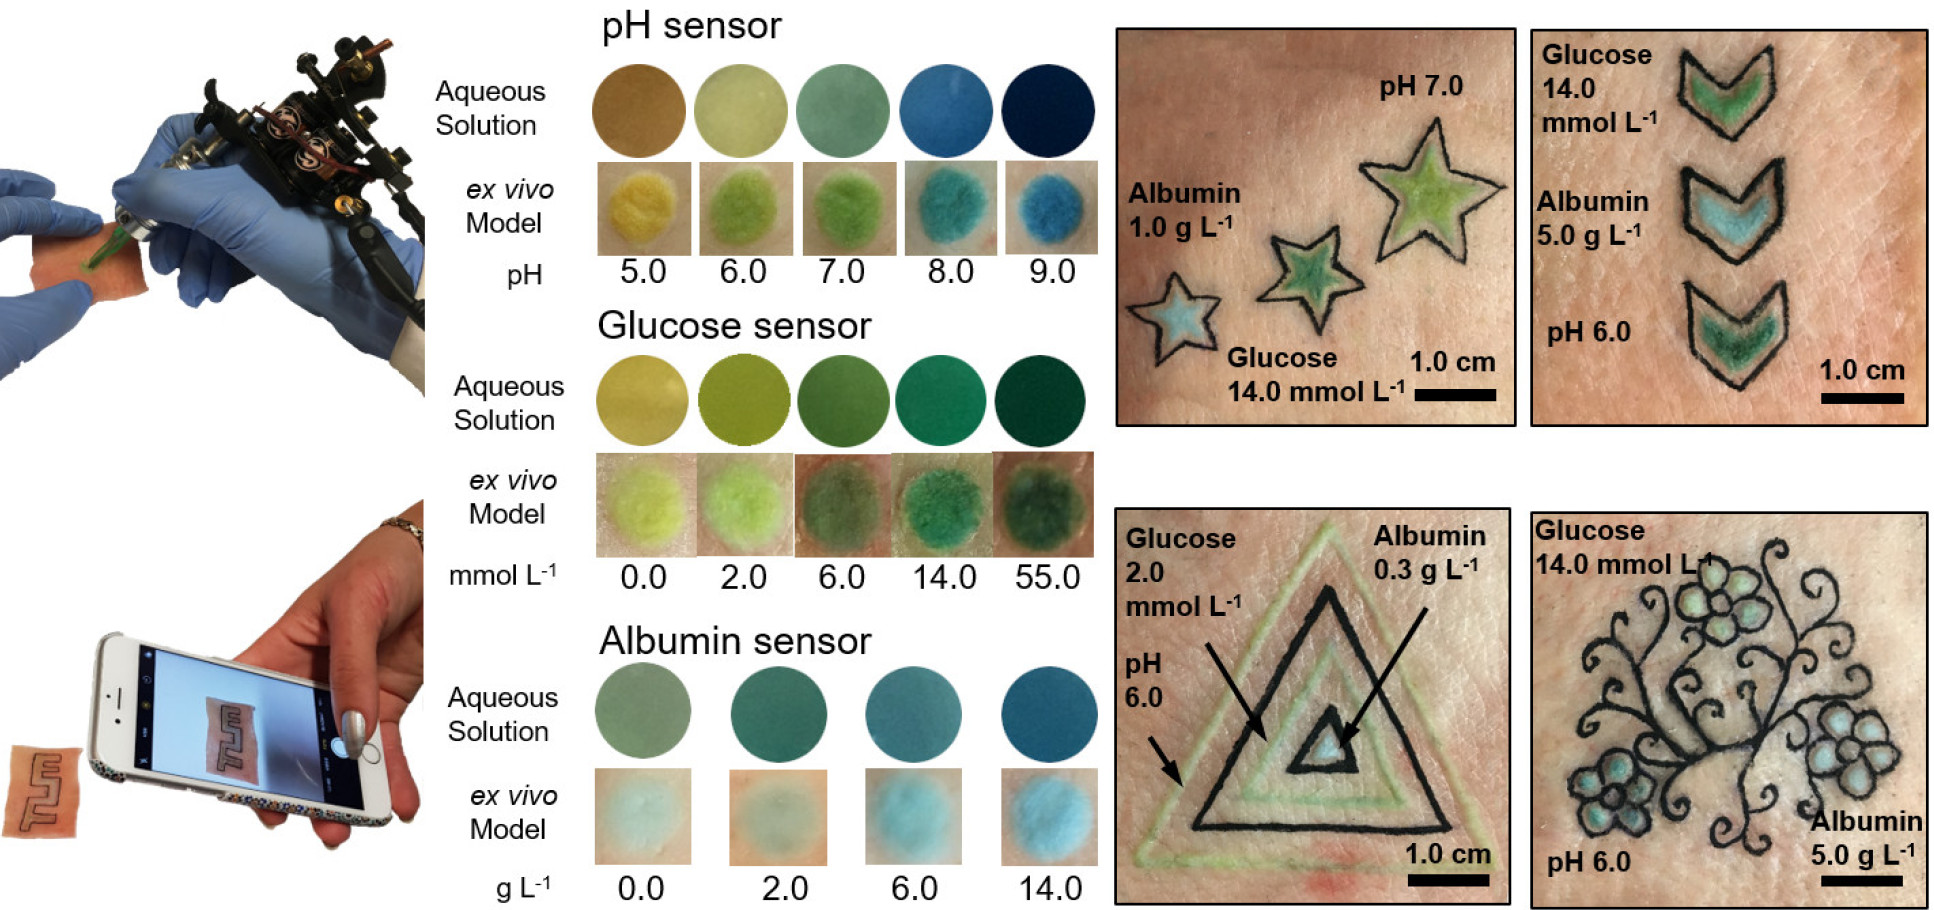 Dermal sensors and their applications.